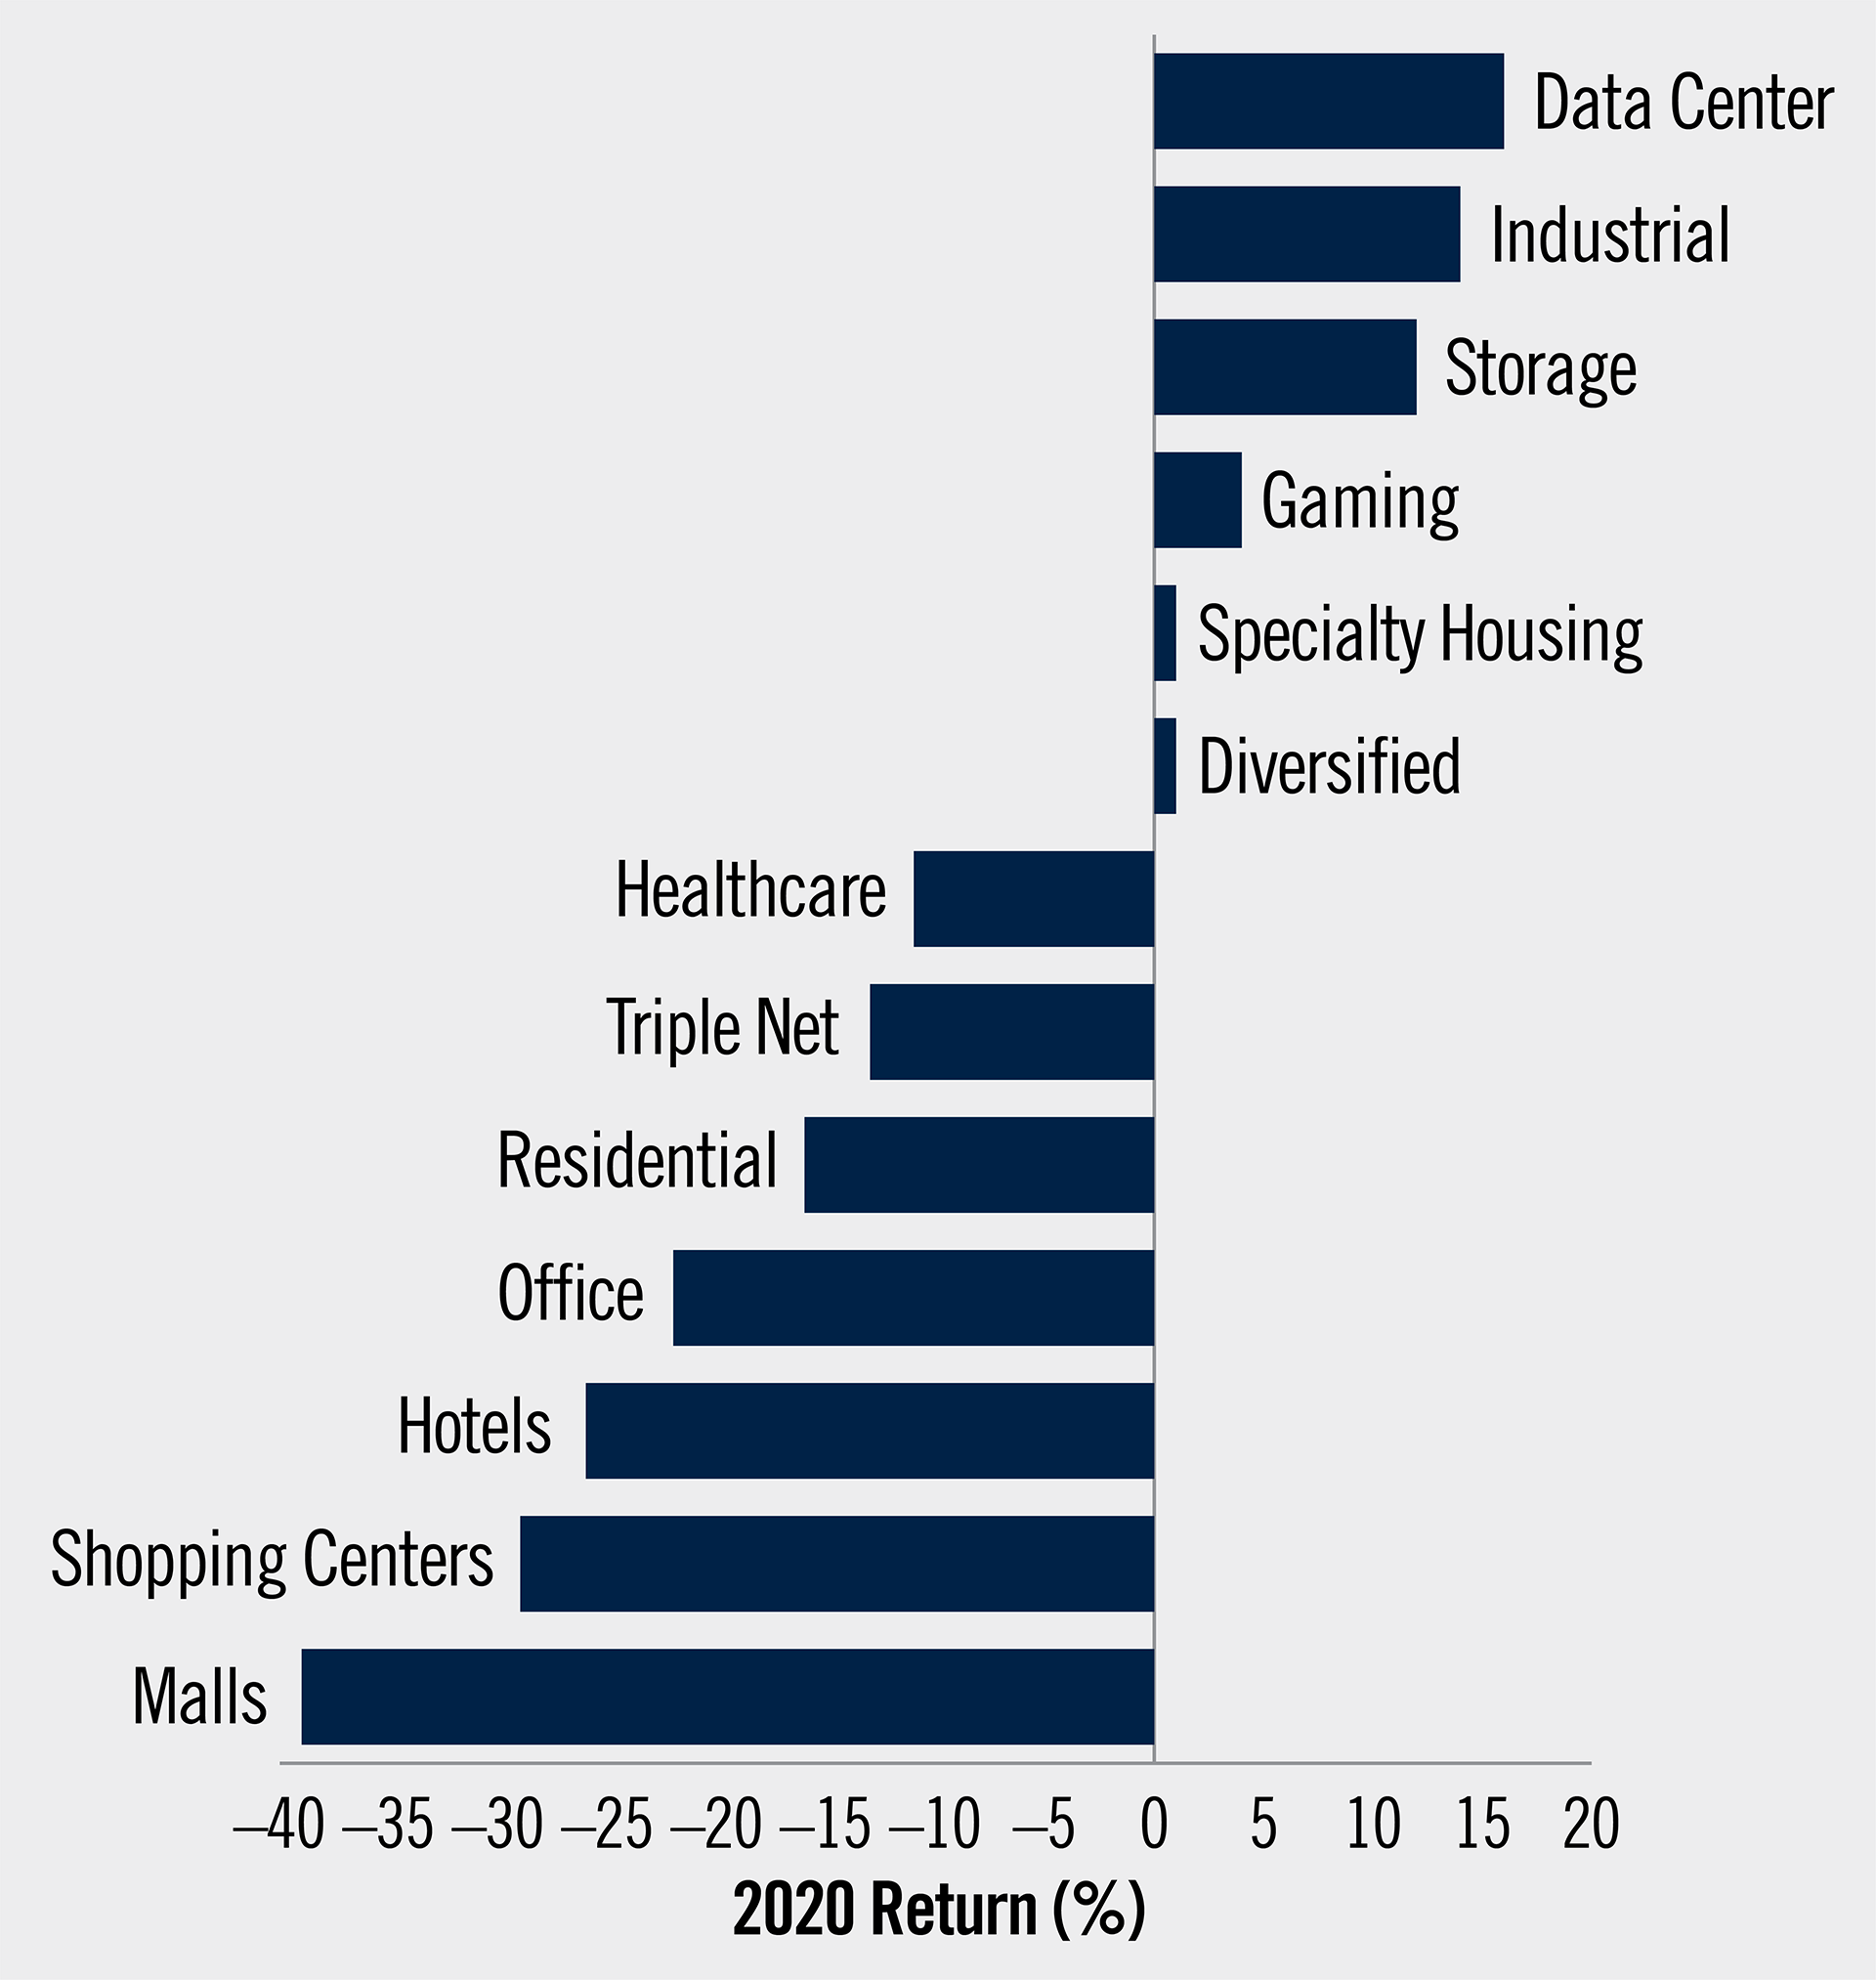 The chart shows 2020 returns by property type with positive returns from data center, industrial, storage, gaming, specialty housing and diversified and negative returns from healthcare, triple net, residential, office, hotels, shopping centers and malls.